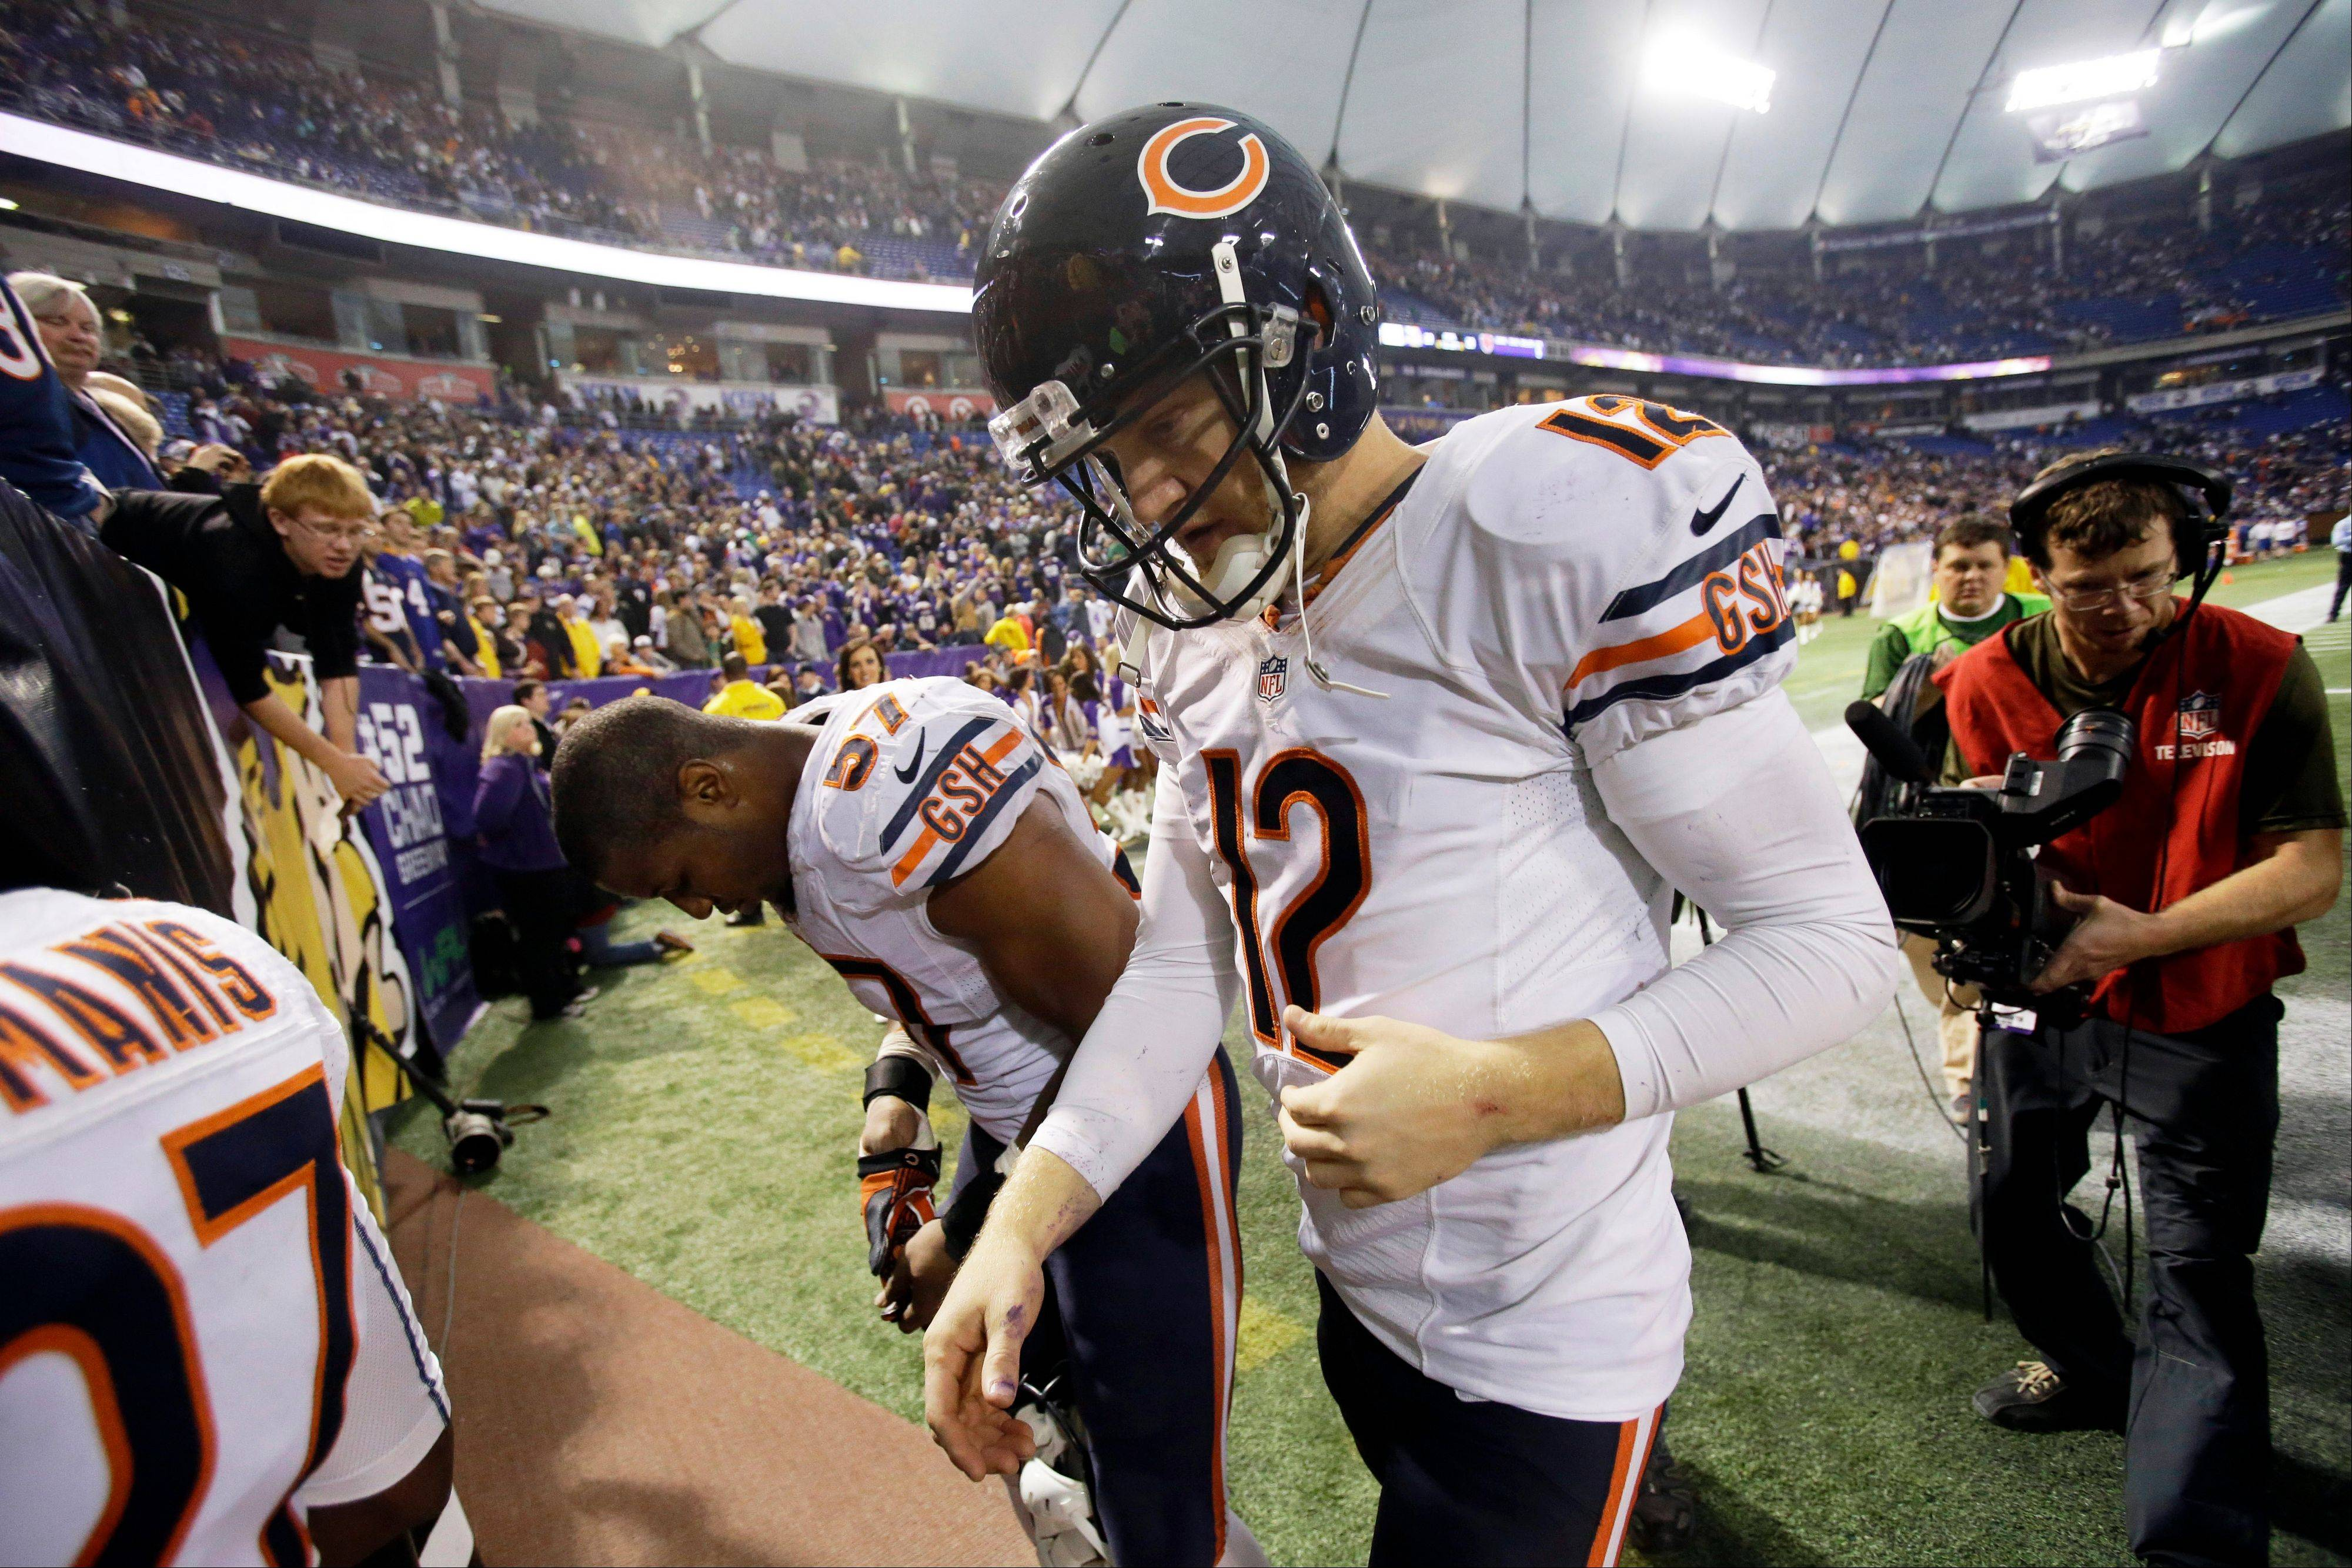 Chicago Bears quarterback Josh McCown (12) walks off the field after an NFL football game against the Minnesota Vikings. The Vikings won 23-20 in overtime.